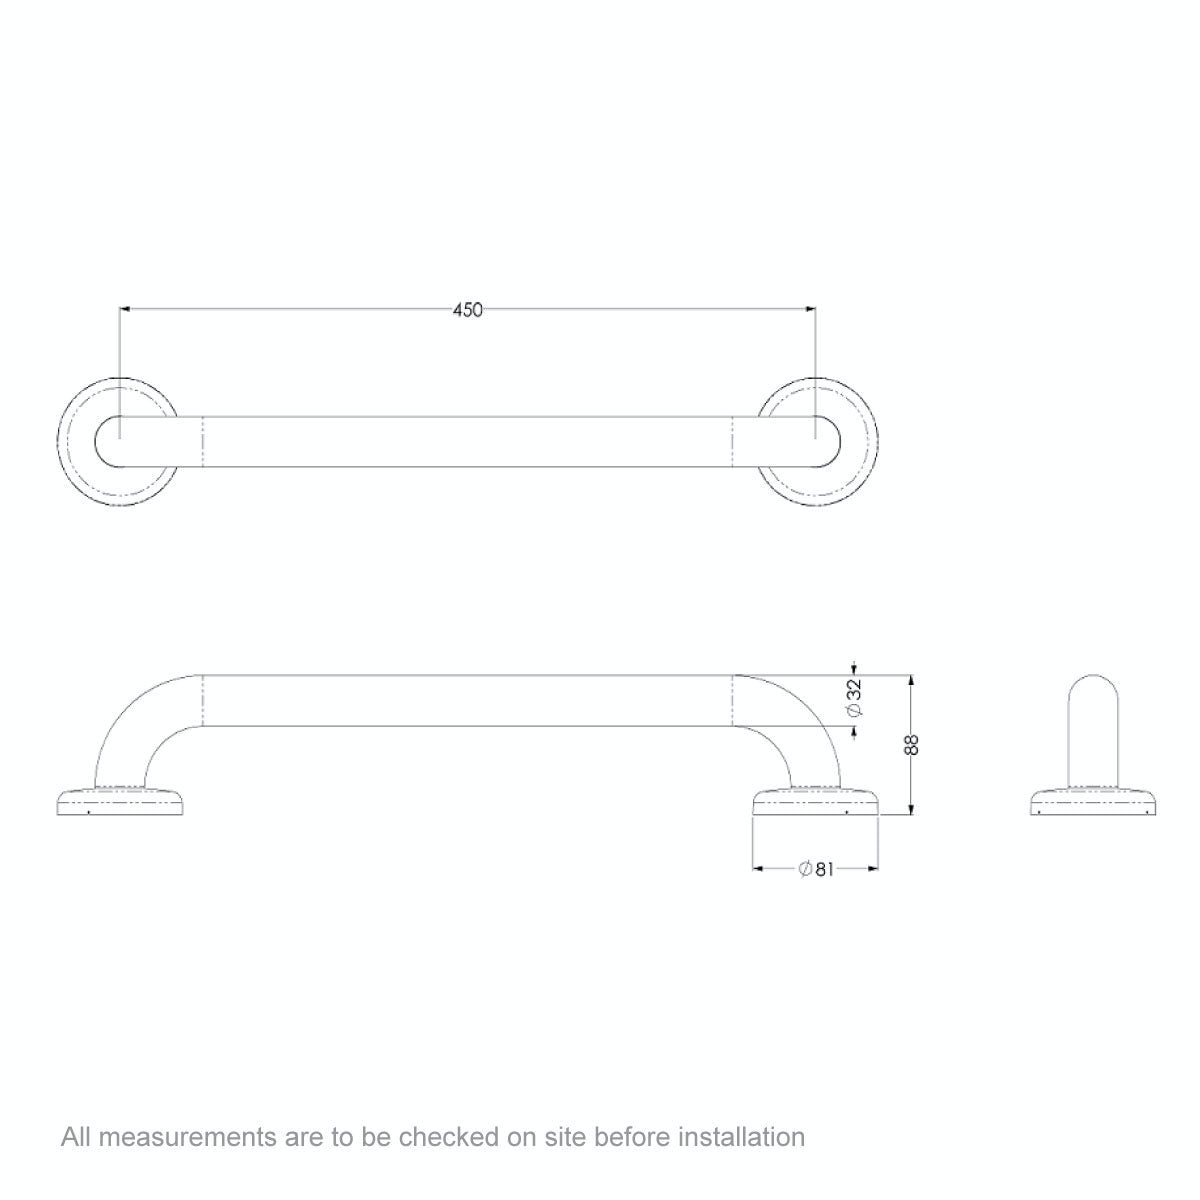 Dimensions for AKW Stainless steel grab rail 450mm